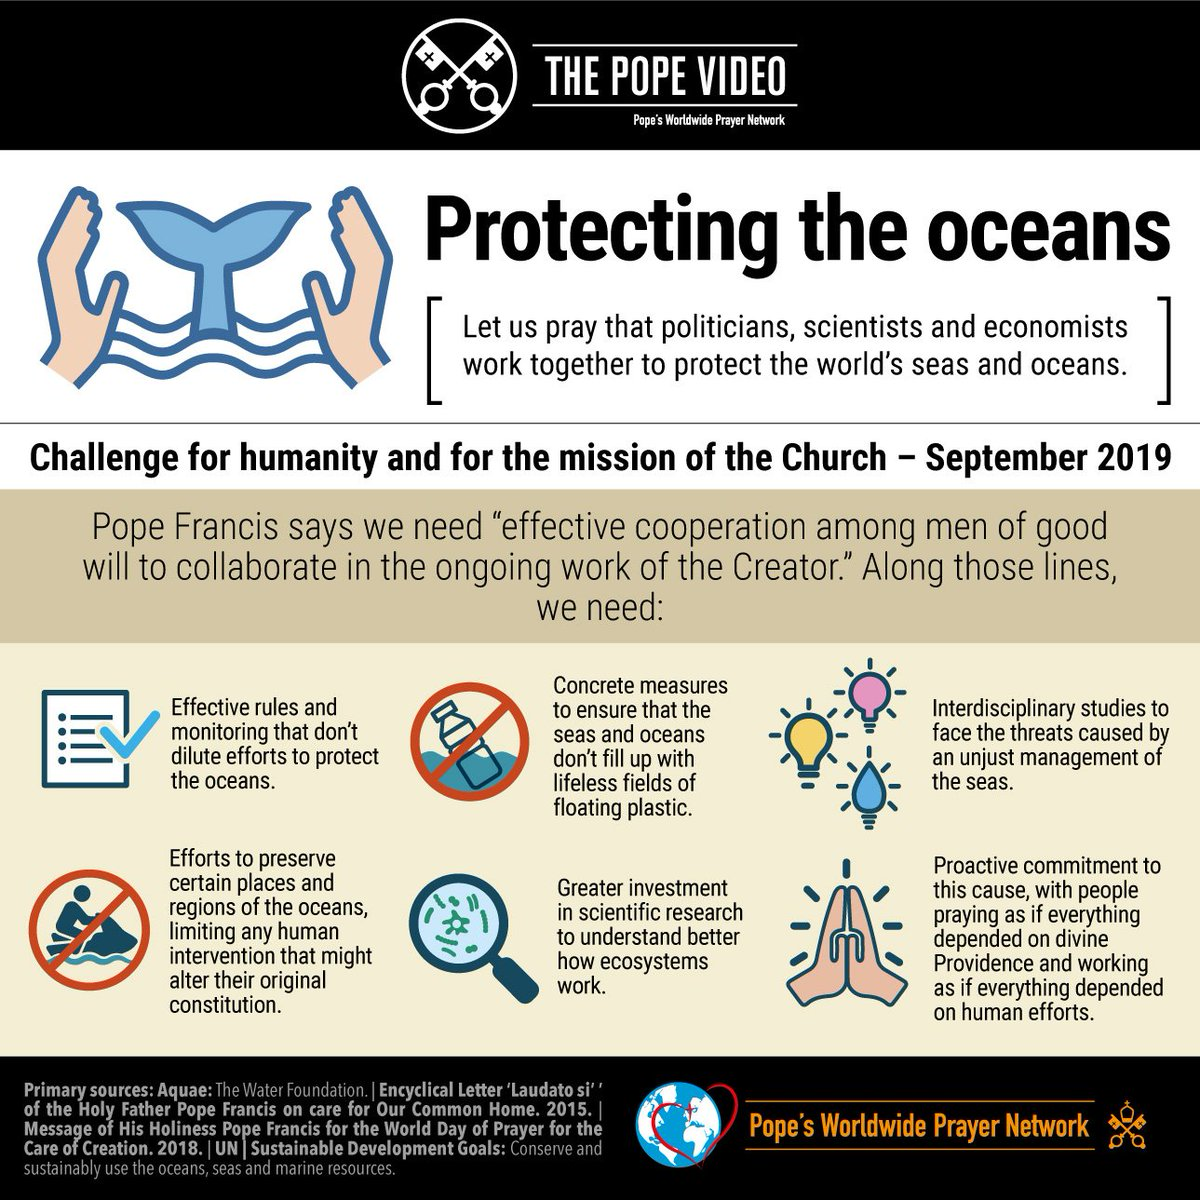 Pope Francis invites us to pray this month that politicians, scientists and economists work together to protect the world's seas and oceans. Join him in prayer. #Creation #ThePopeVideo #SeasonOfCreation